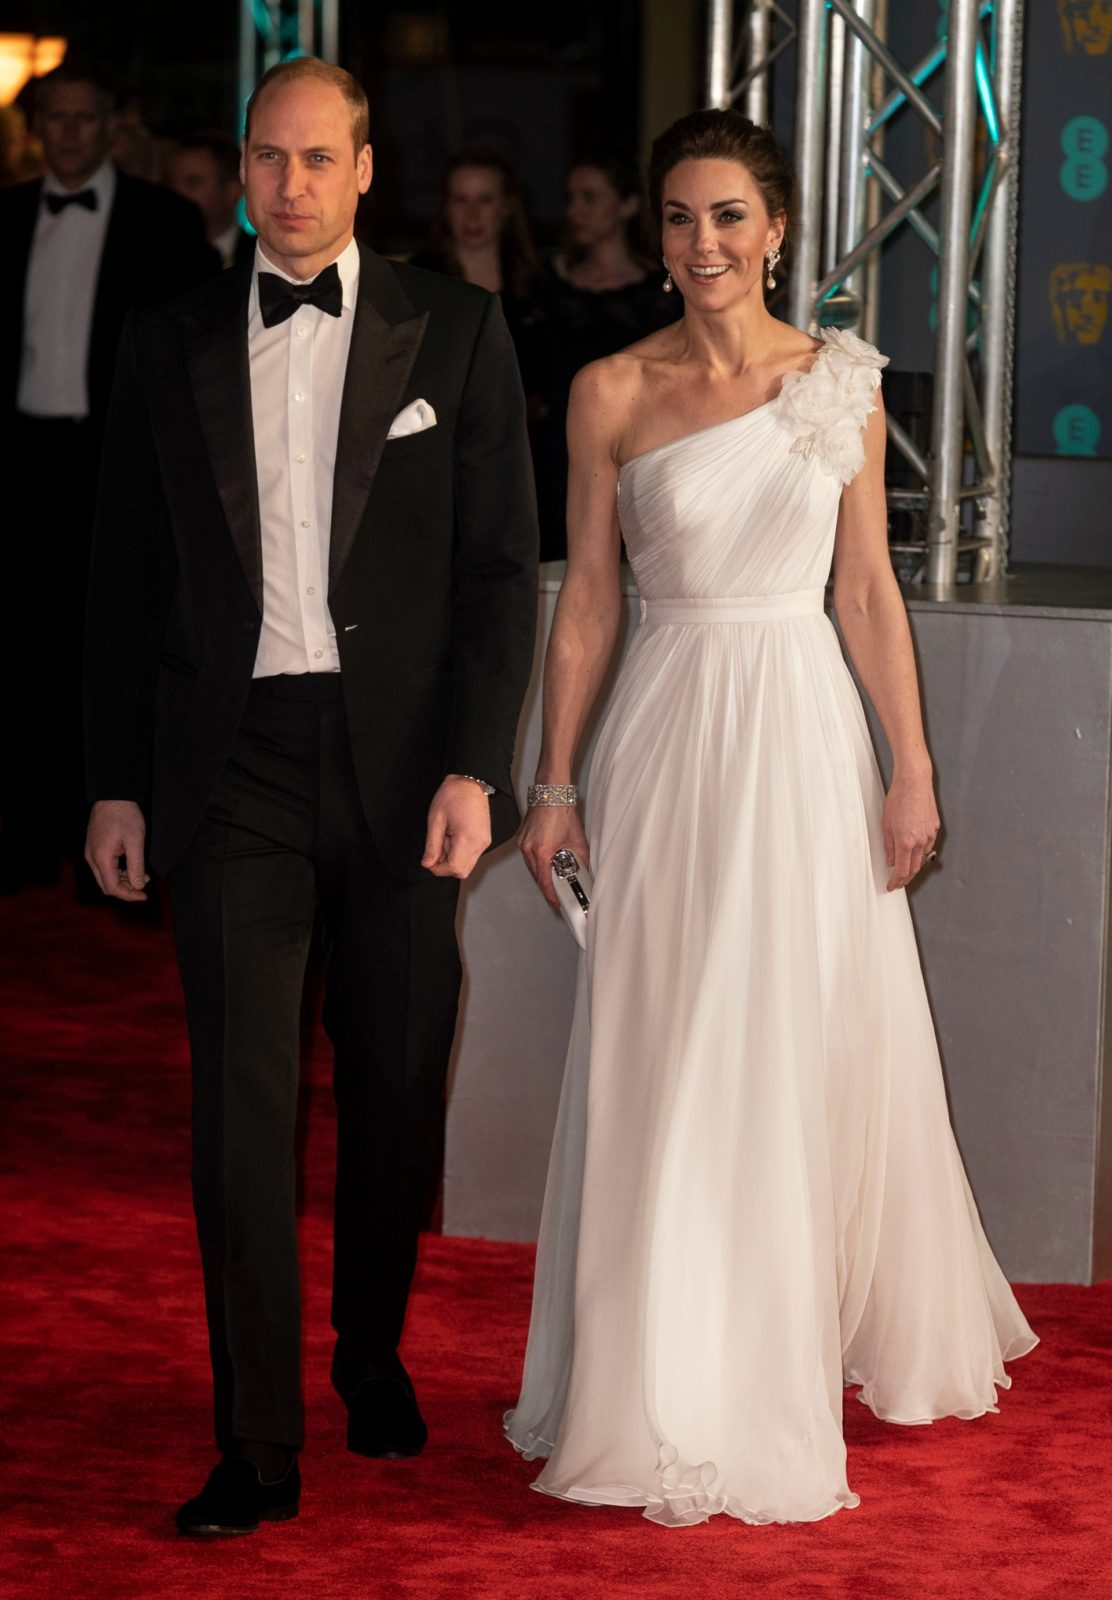 The Duke and Duchess of Cambridge arrived in style for theannual British Academy Film Awards in London on Sunday night. Source: Getty